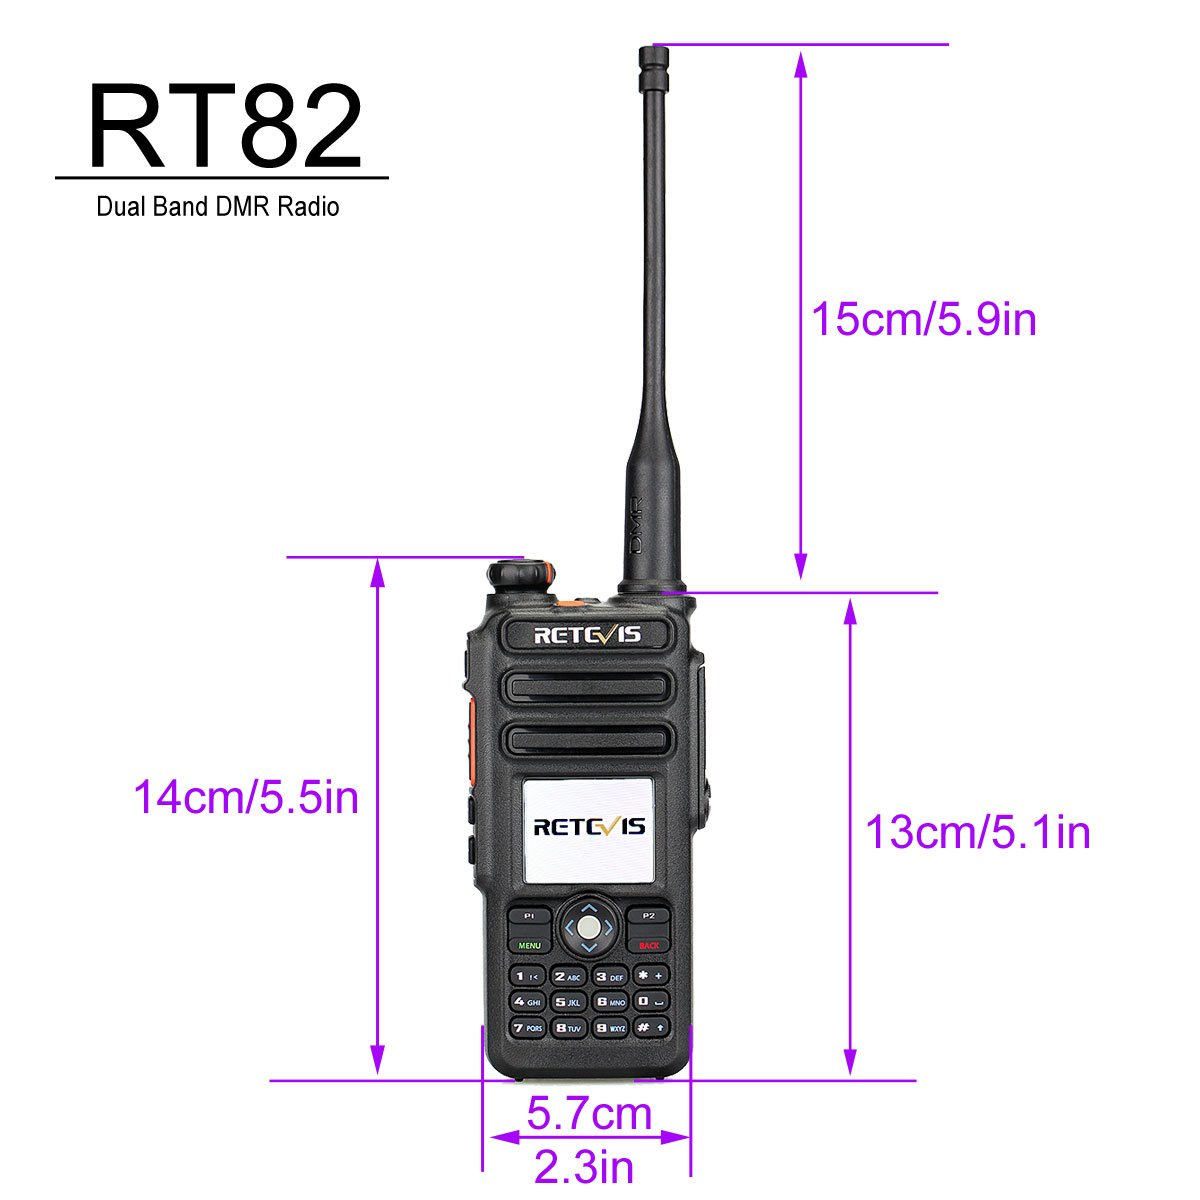 Retevis RT82 IP67 Waterproof Dual Band DMR Digital/Analog Two Way Radio 5W 136-174MHZ/400-480MHZ 3000 Channels 10000 Contacts Ham Amateur Radio with Record Function and Programming Cable by Retevis (Image #3)